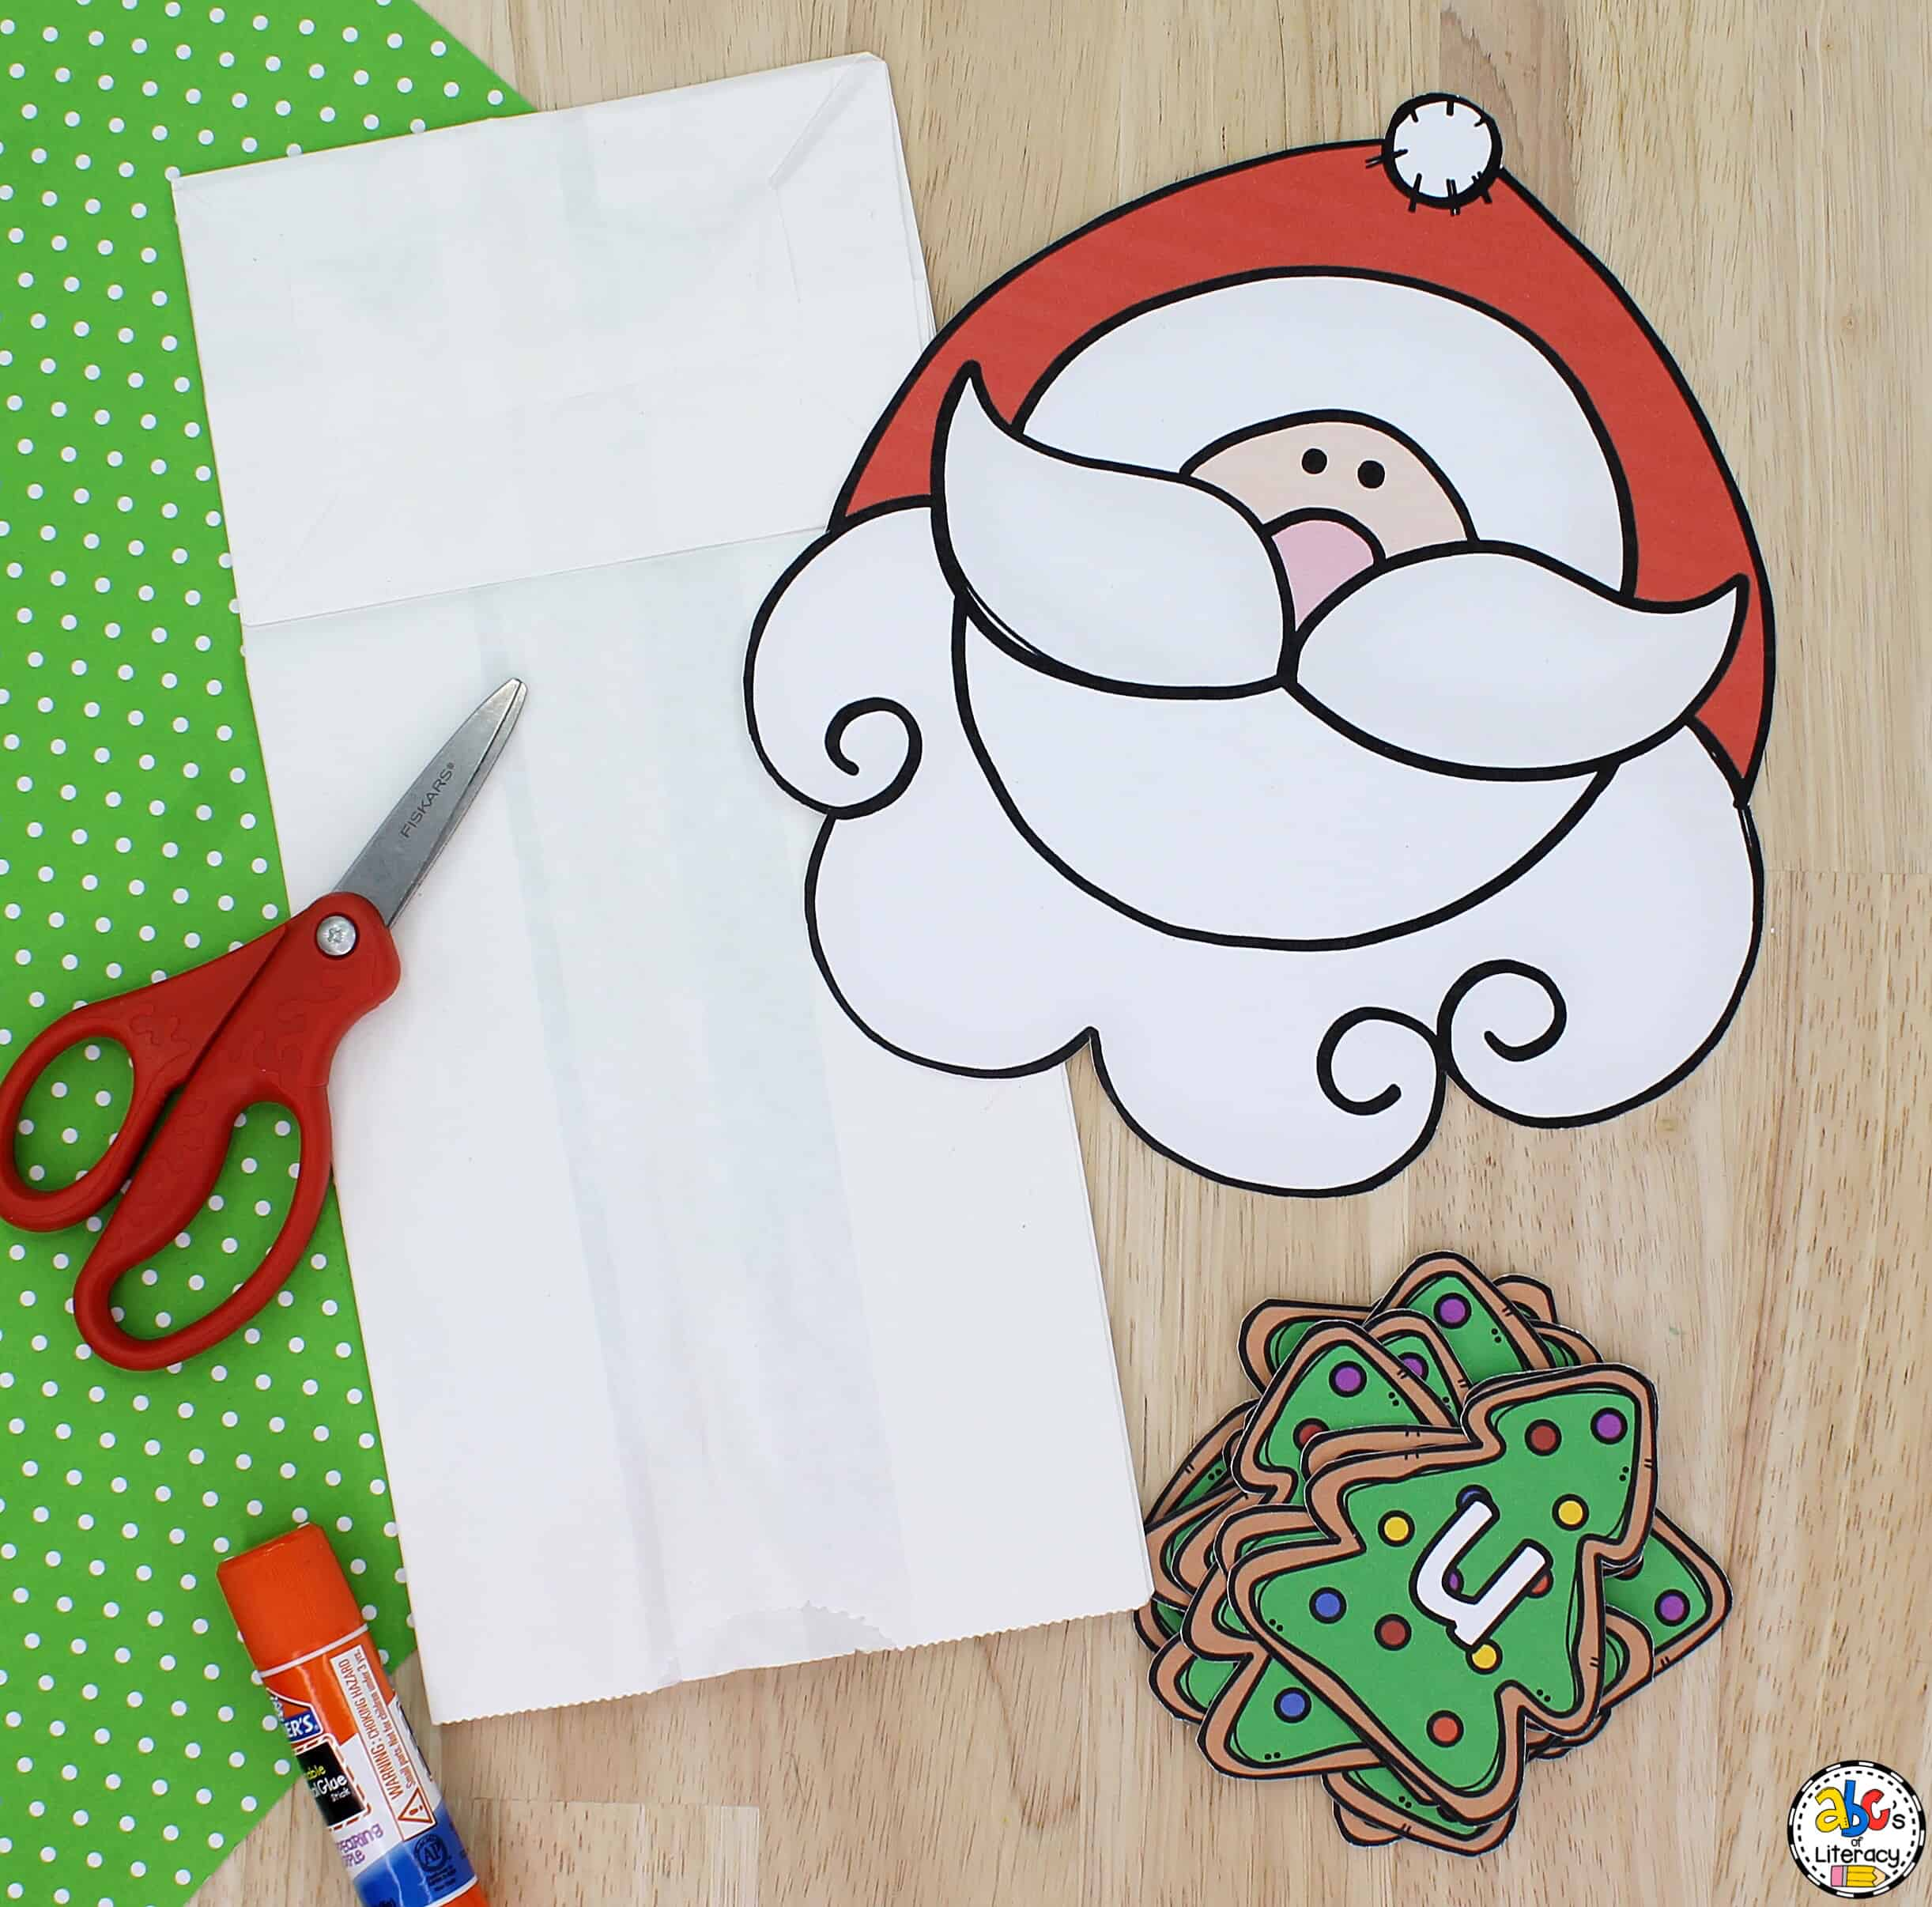 Christmas Activity for Kids